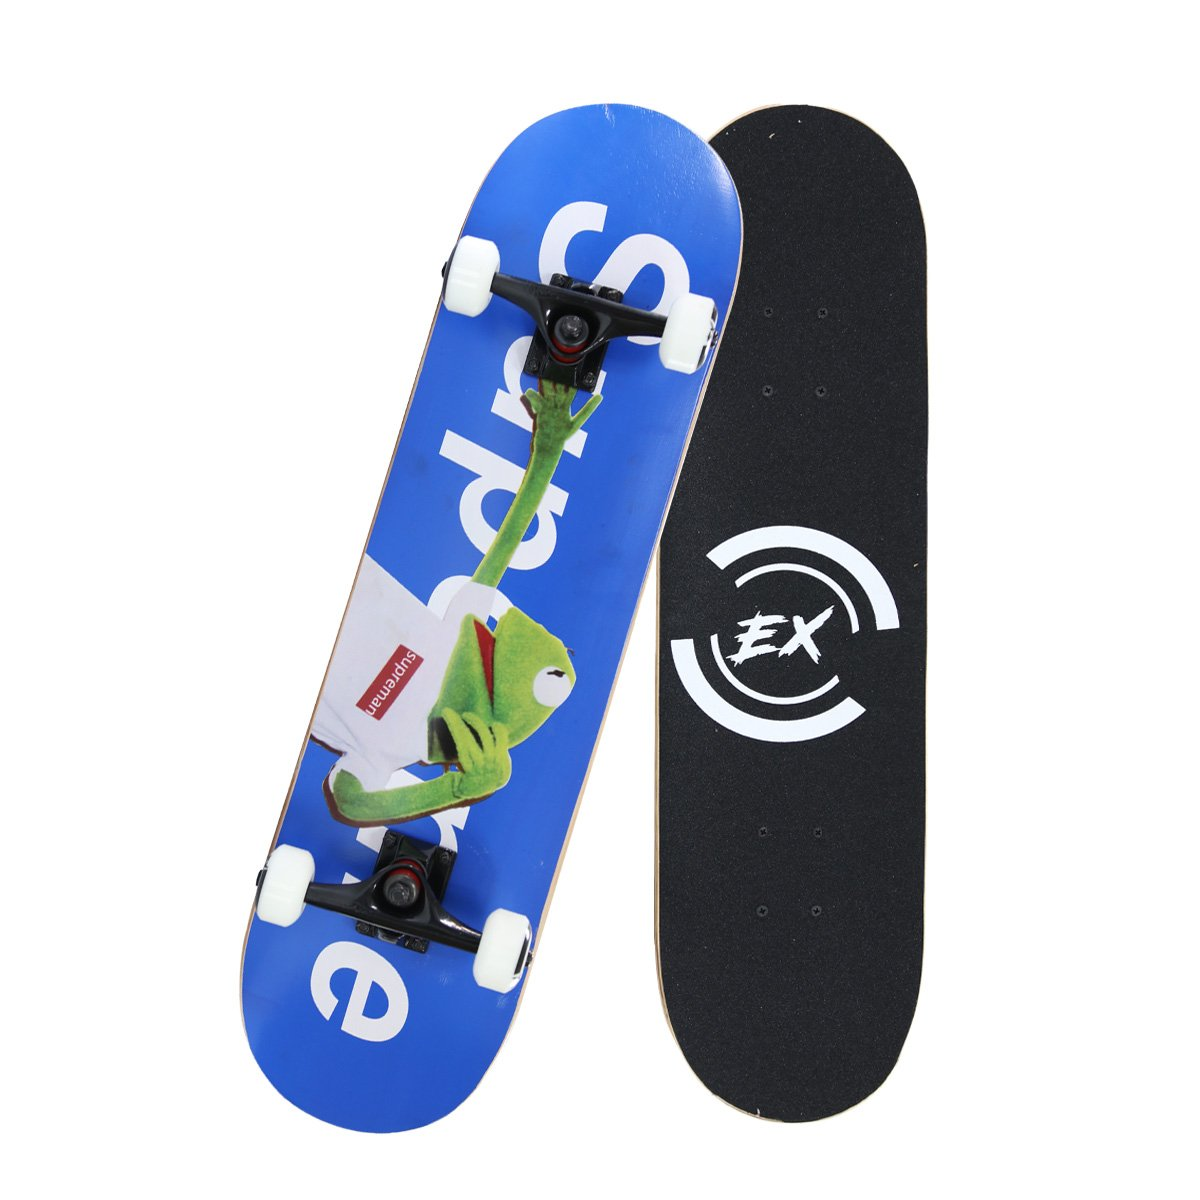 Pro Skateboard 31 X 8 Standard Skateboards Cruiser Complete Canadian Maple 8 Layers Double Kick Concave Skate Boards /…